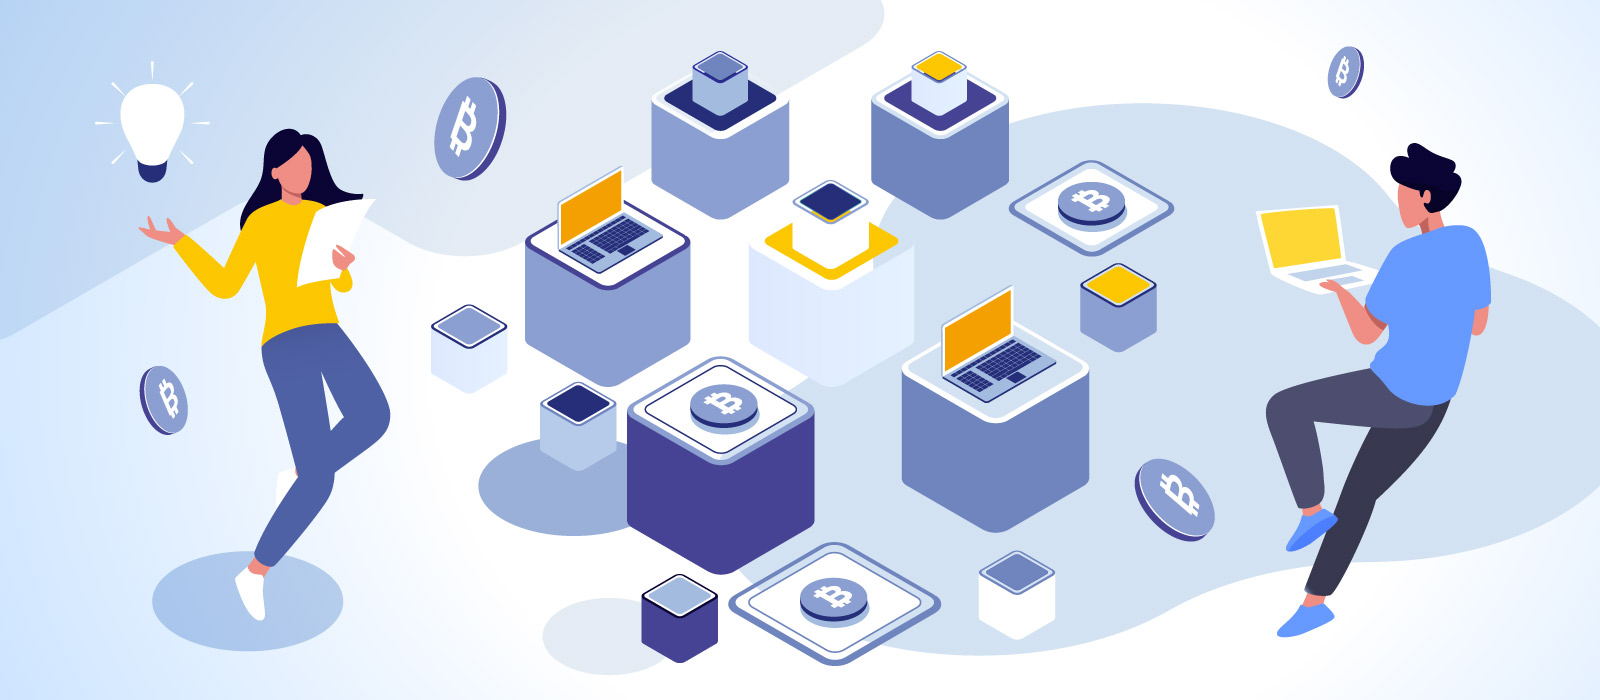 Top Blockchain Startups That Are Disrupting the Status Quo